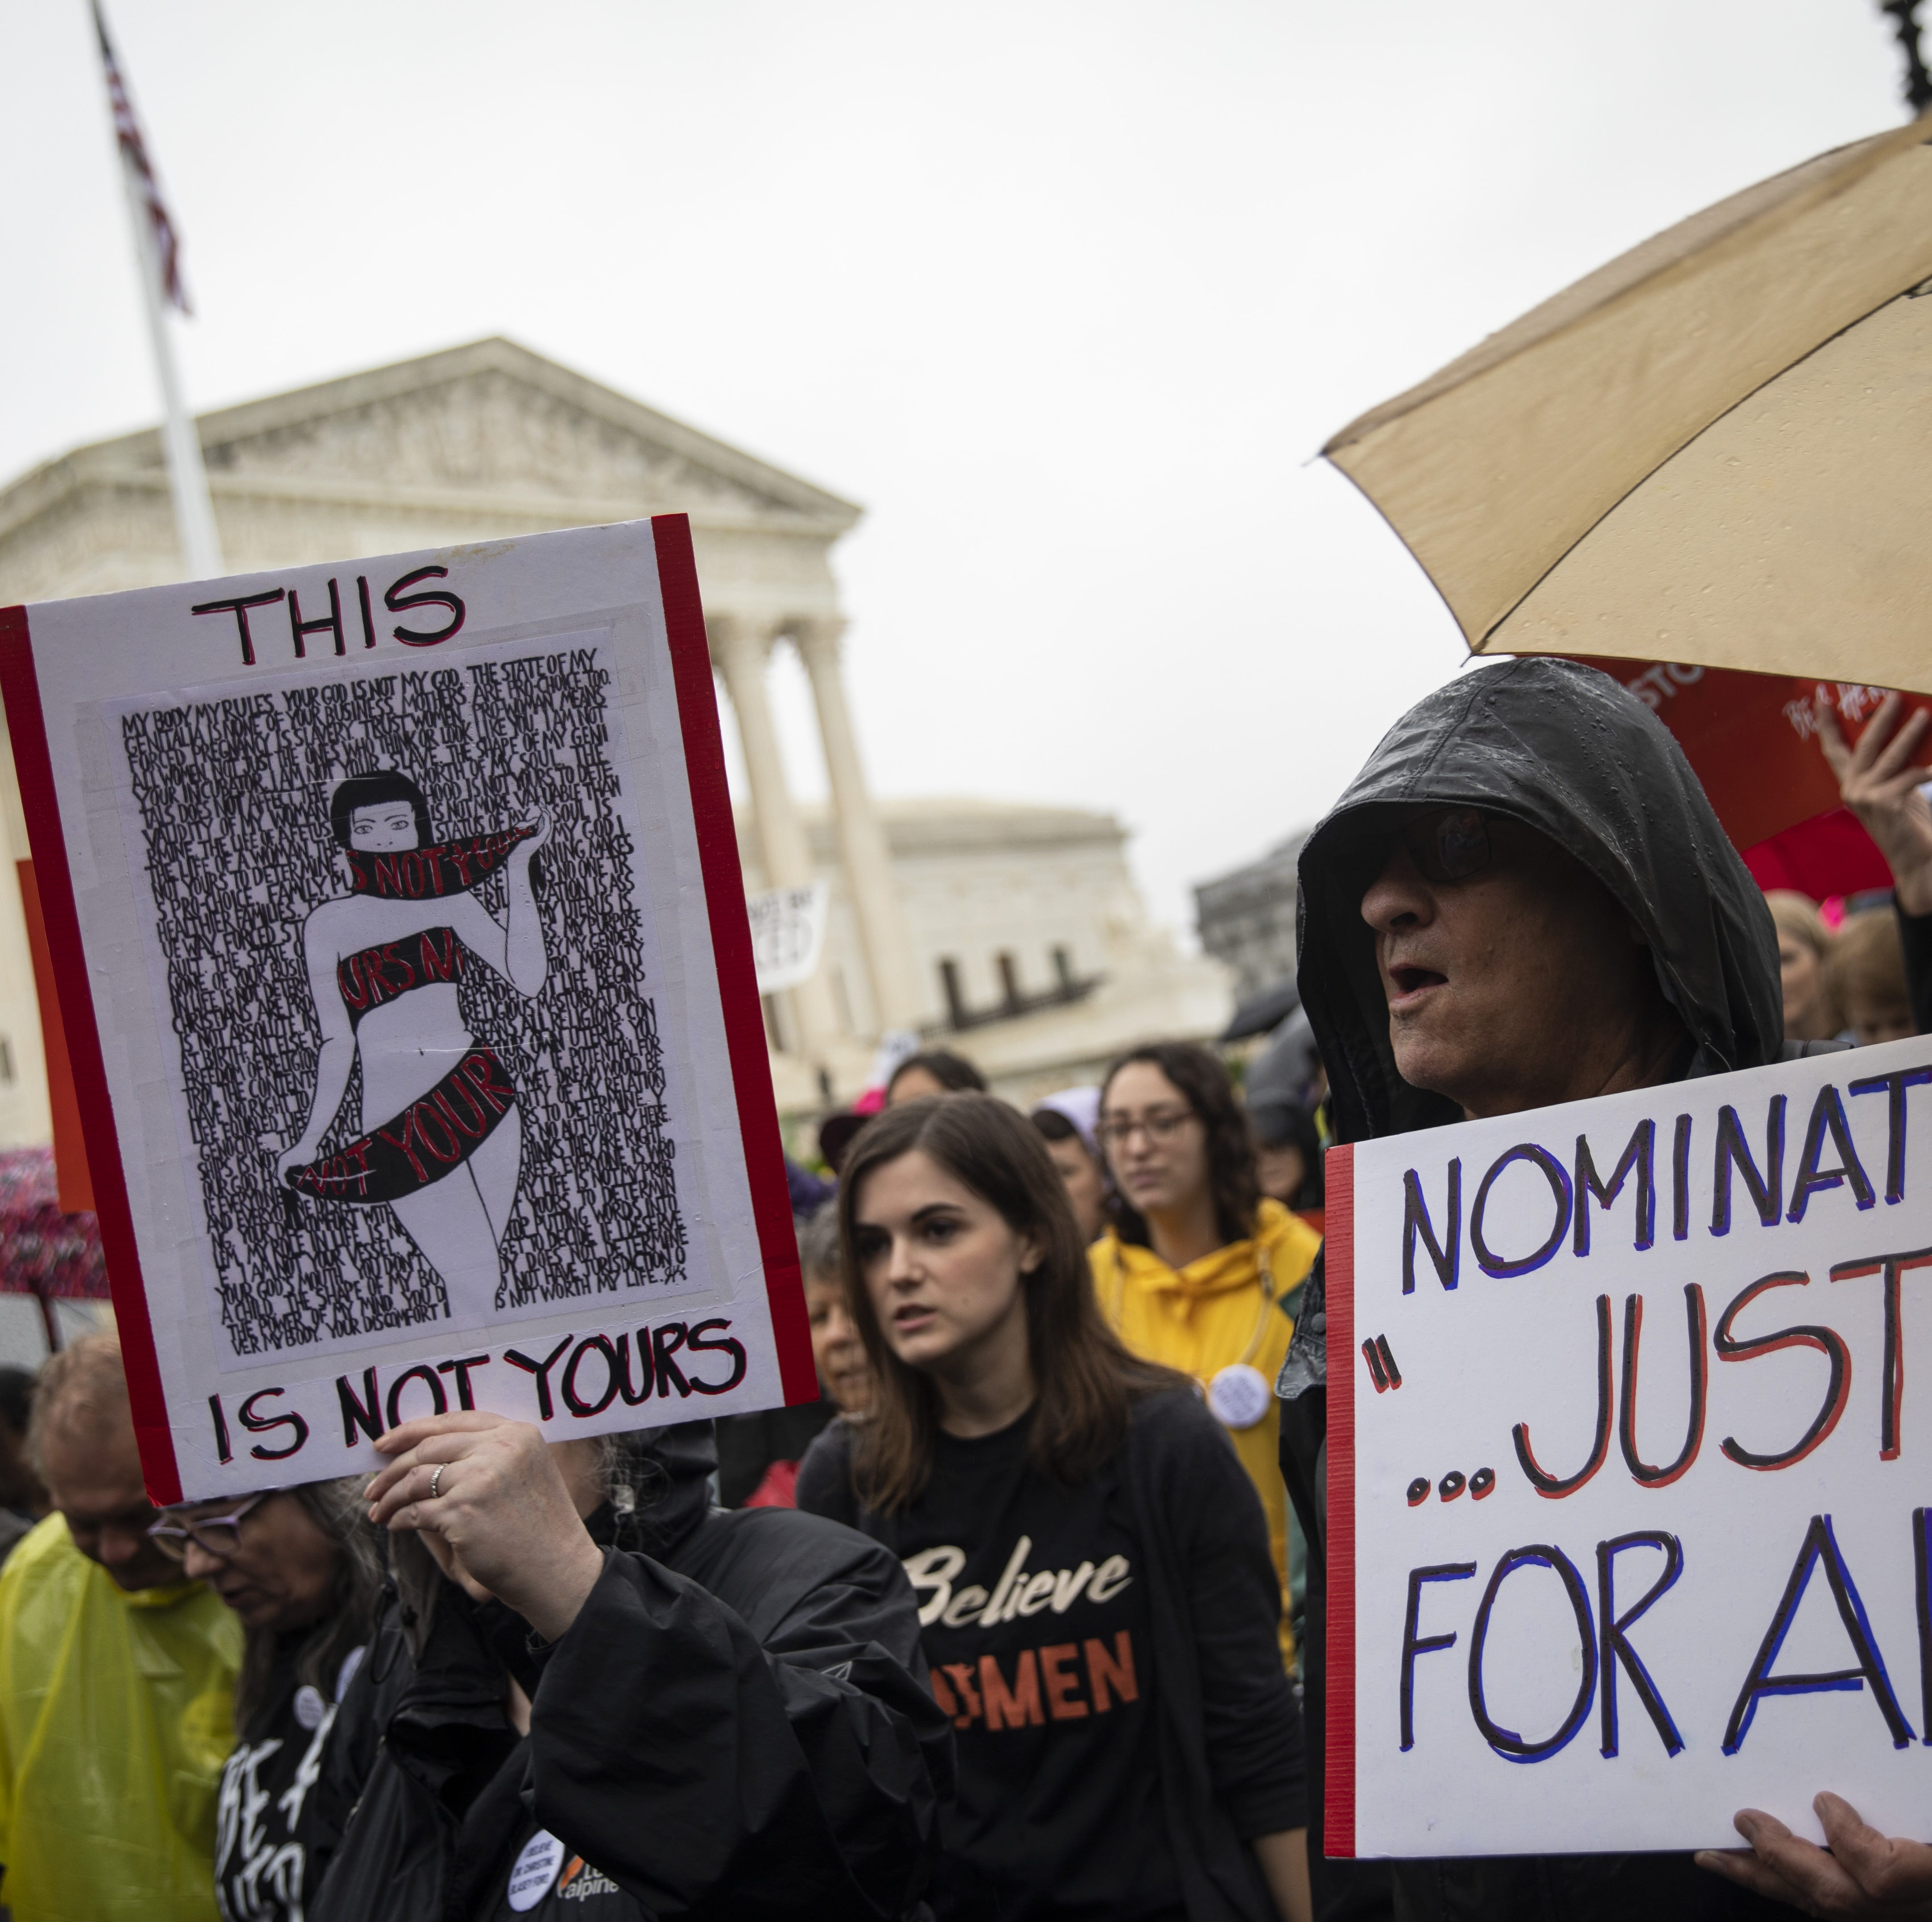 Don't judge Brett Kavanaugh accusers. I covered the police and didn't report my own rape.